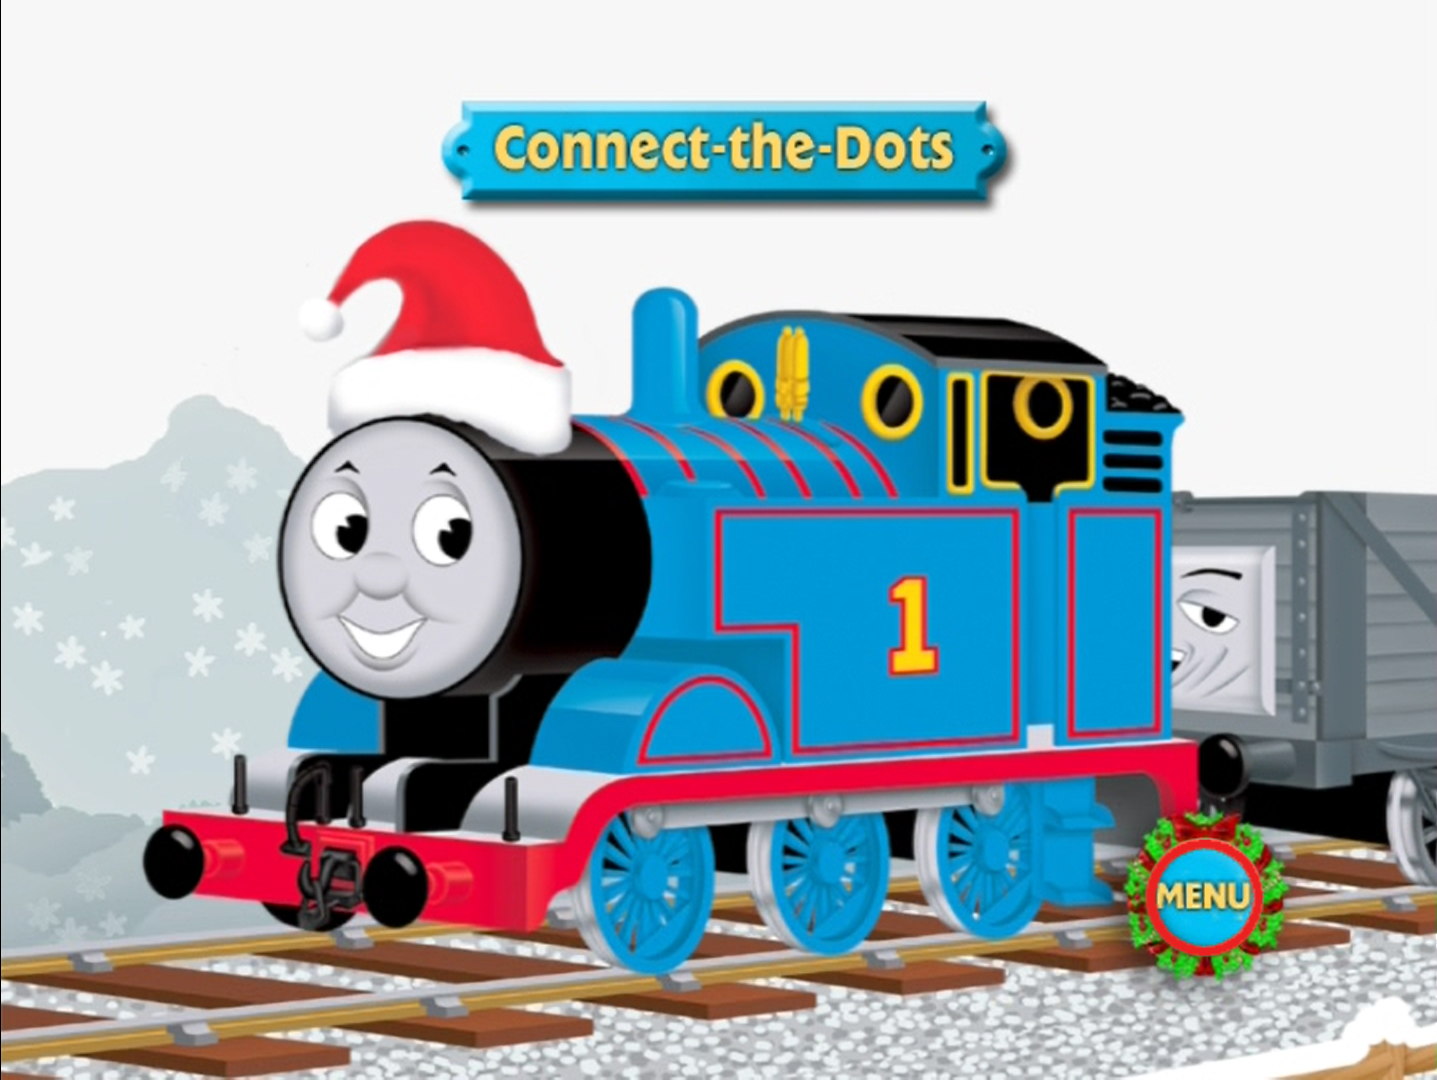 File:UltimateChristmasConnect-the-Dotsgame1.png